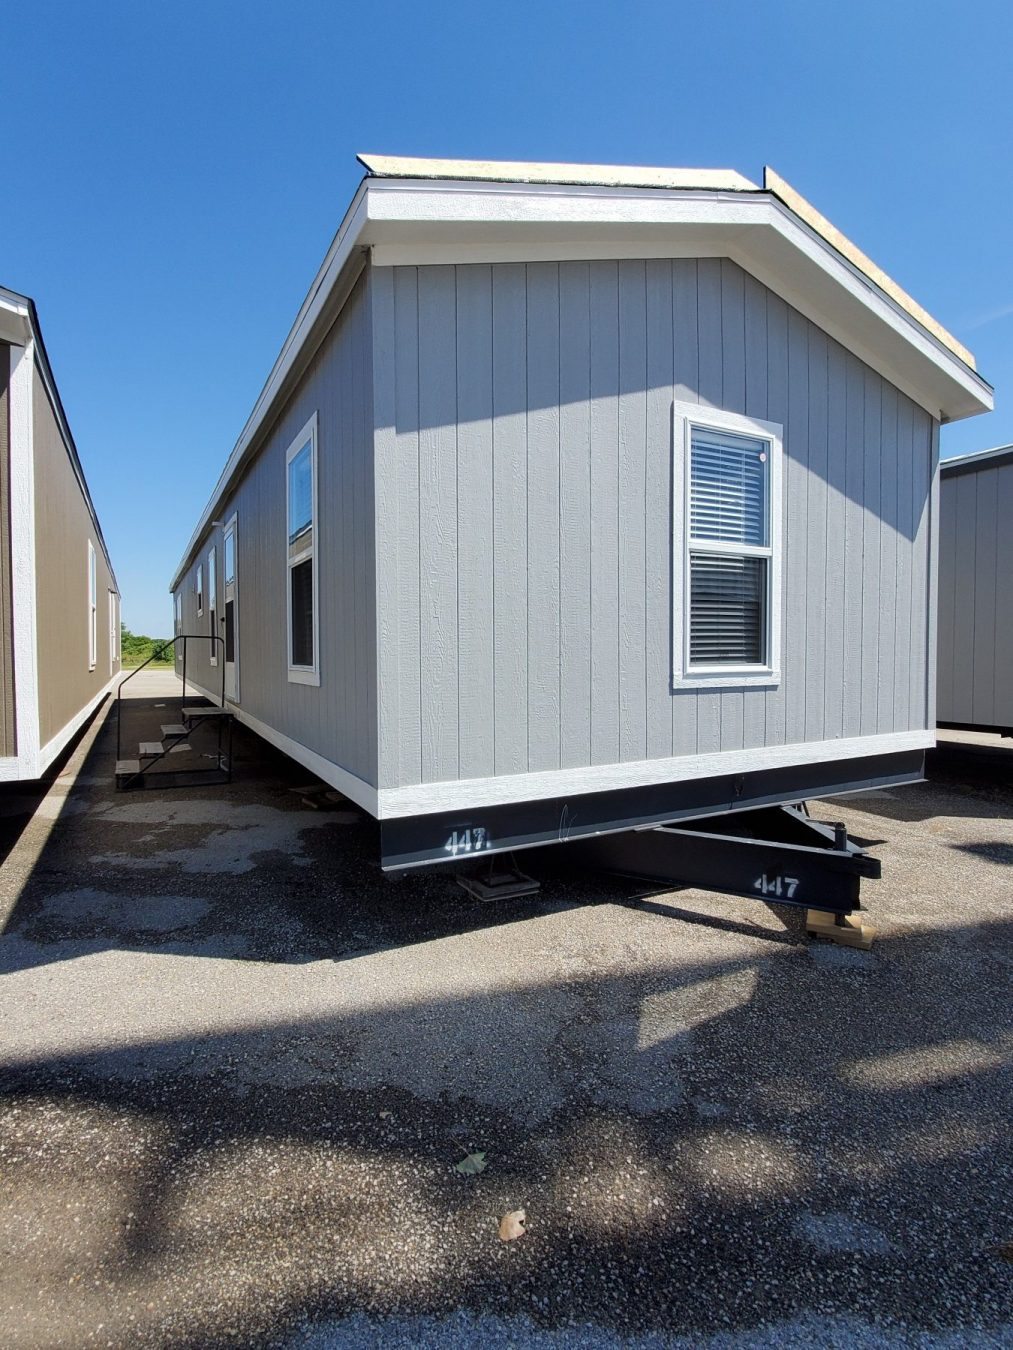 New Vision Rossman - Nunn Homes - Manufactured Homes ... on container home roof shed, mobile home frame shed, flat roof shed, duplex roof shed, cottage roof shed, saltbox roof shed, barn roof shed,